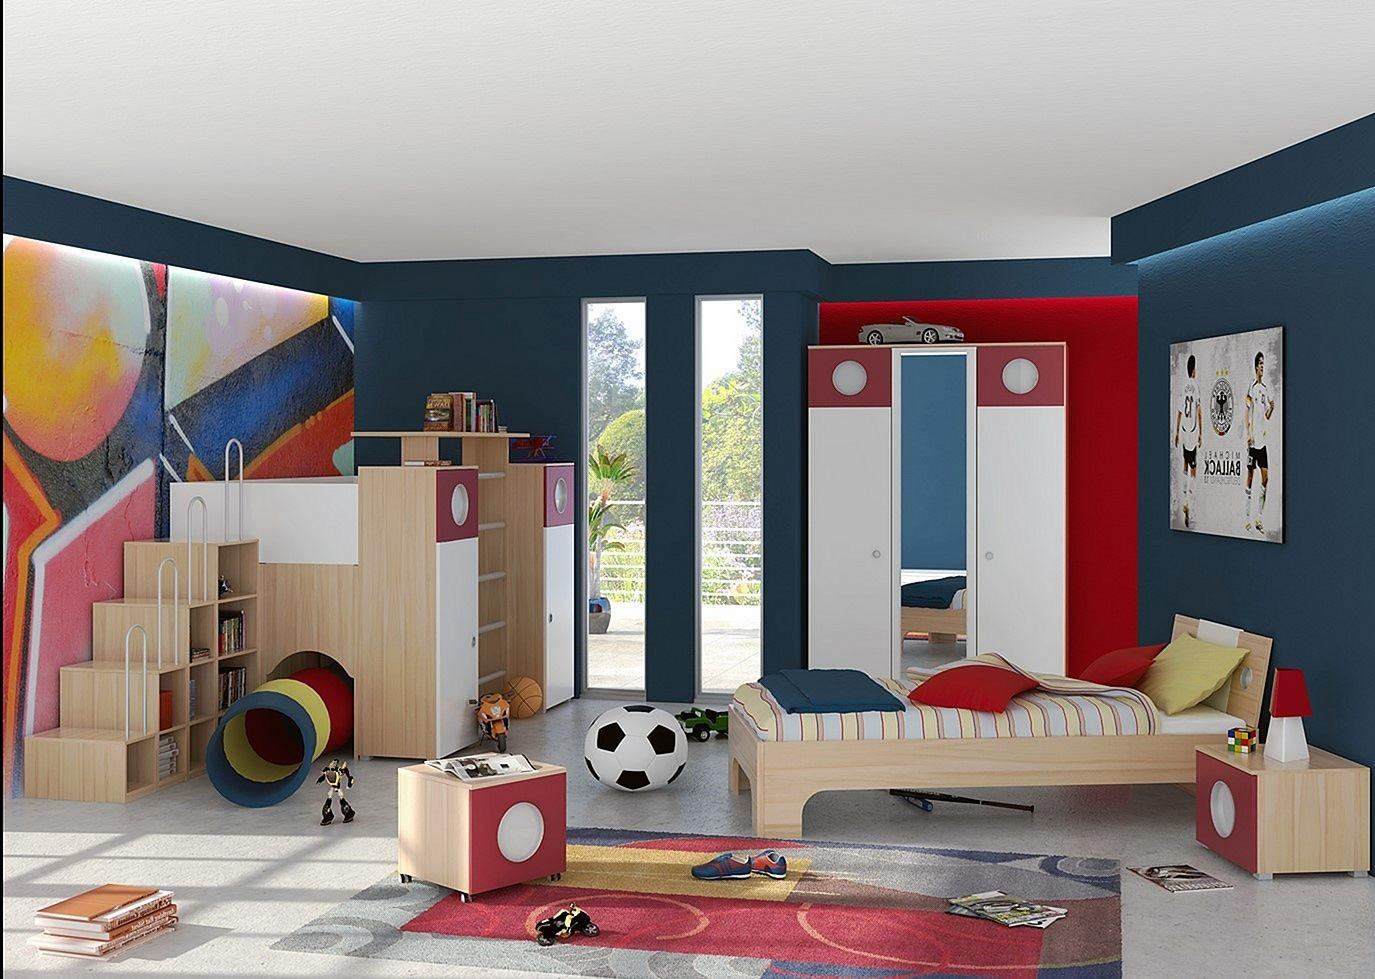 Marvelous Children Bedroom Design Inspiration